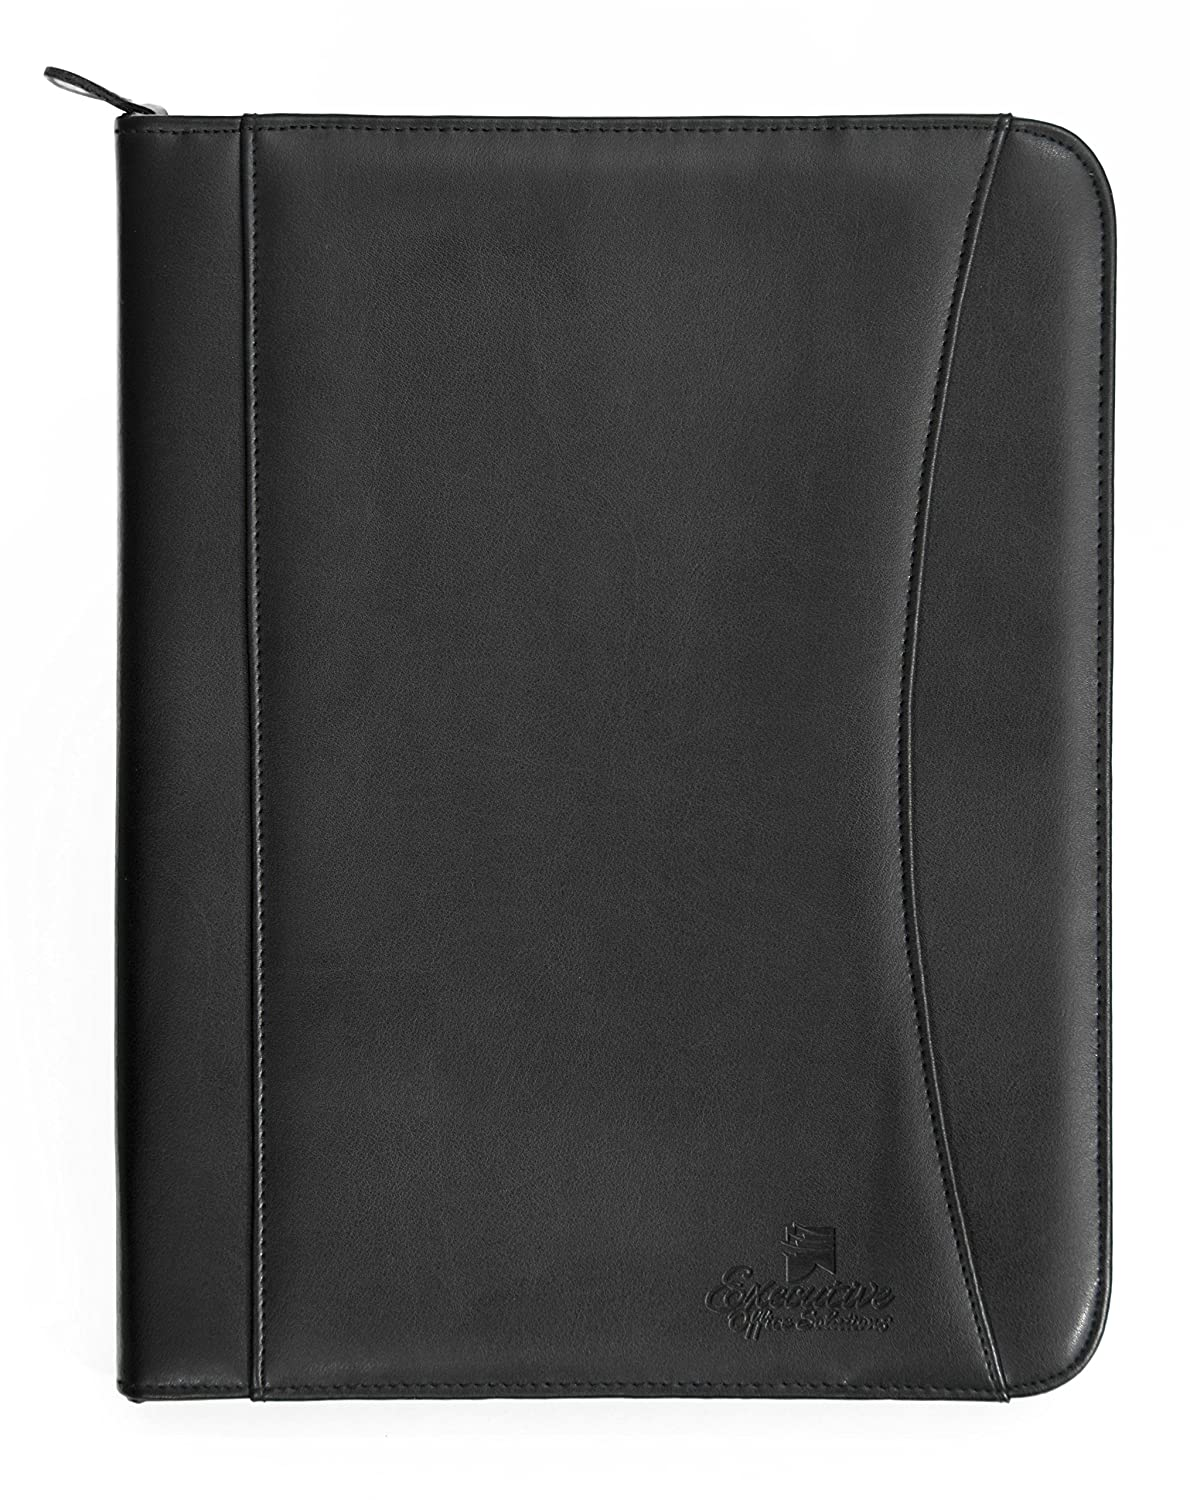 Amazon.com : Professional Executive PU Leather Business Resume ...